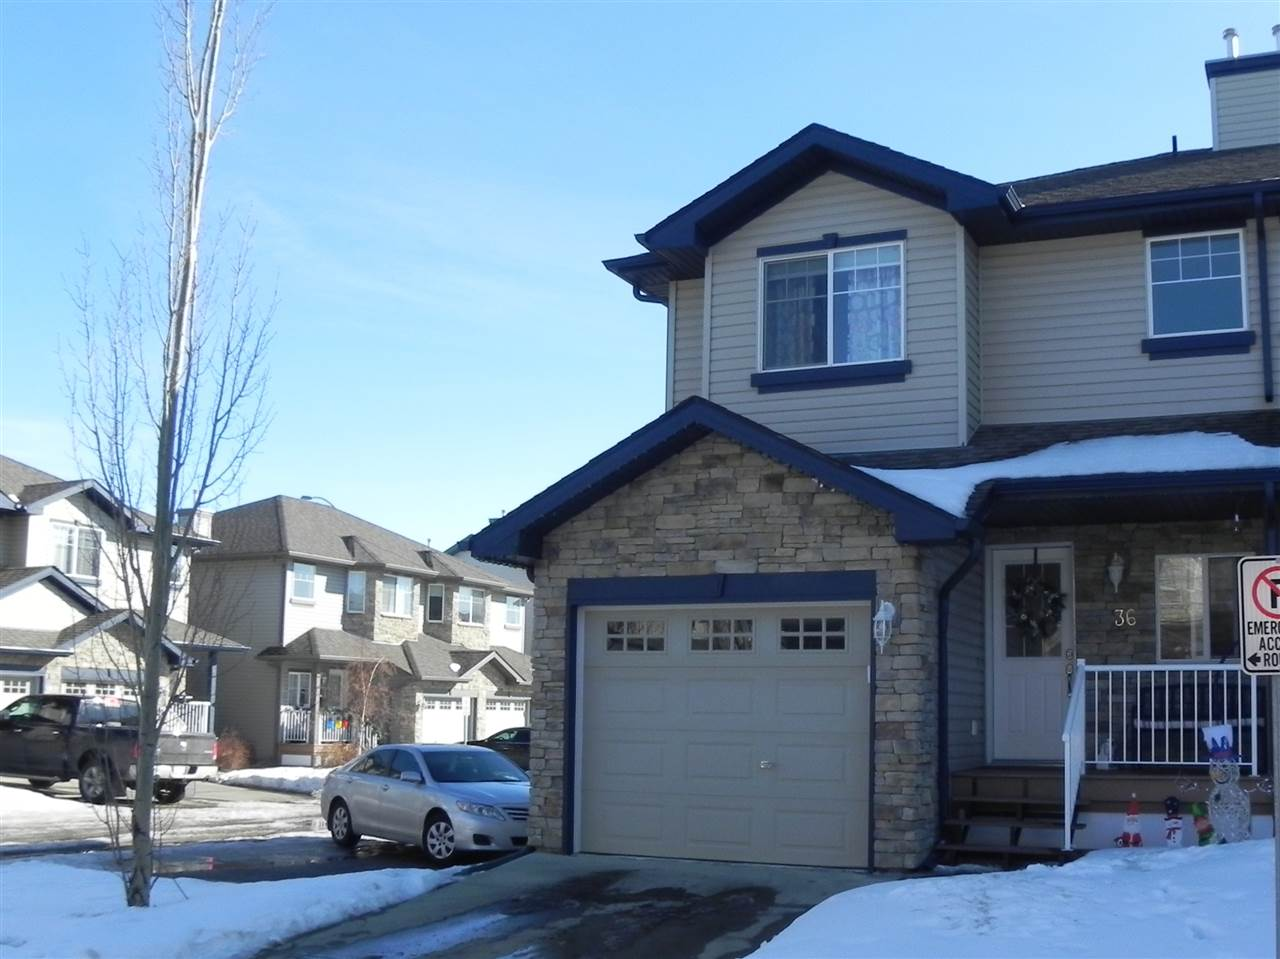 MLS® listing #E4148100 for sale located at 36 6304 SANDIN Way